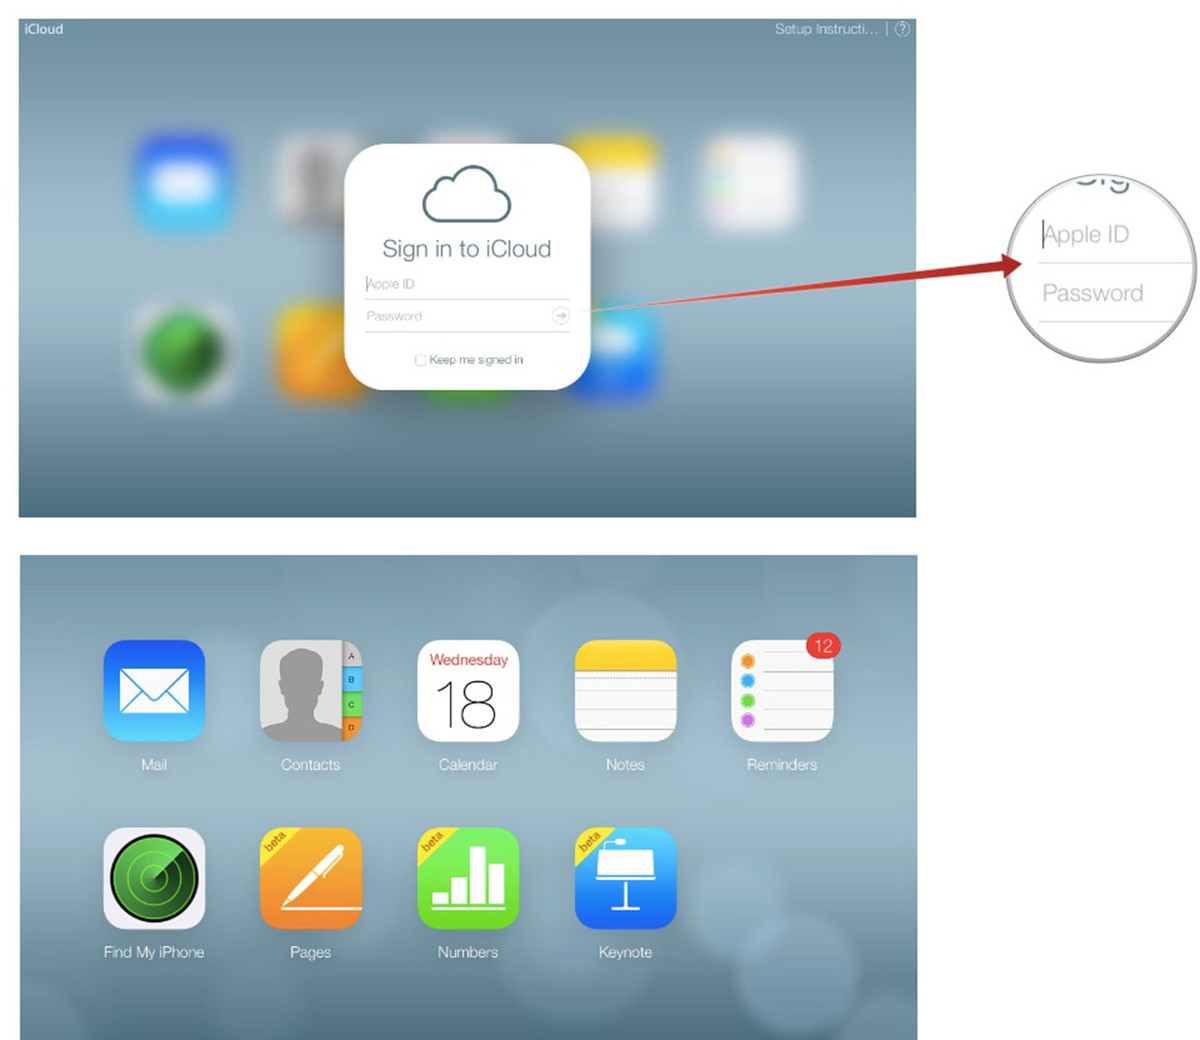 Accessing iCloud Email Login on the Web